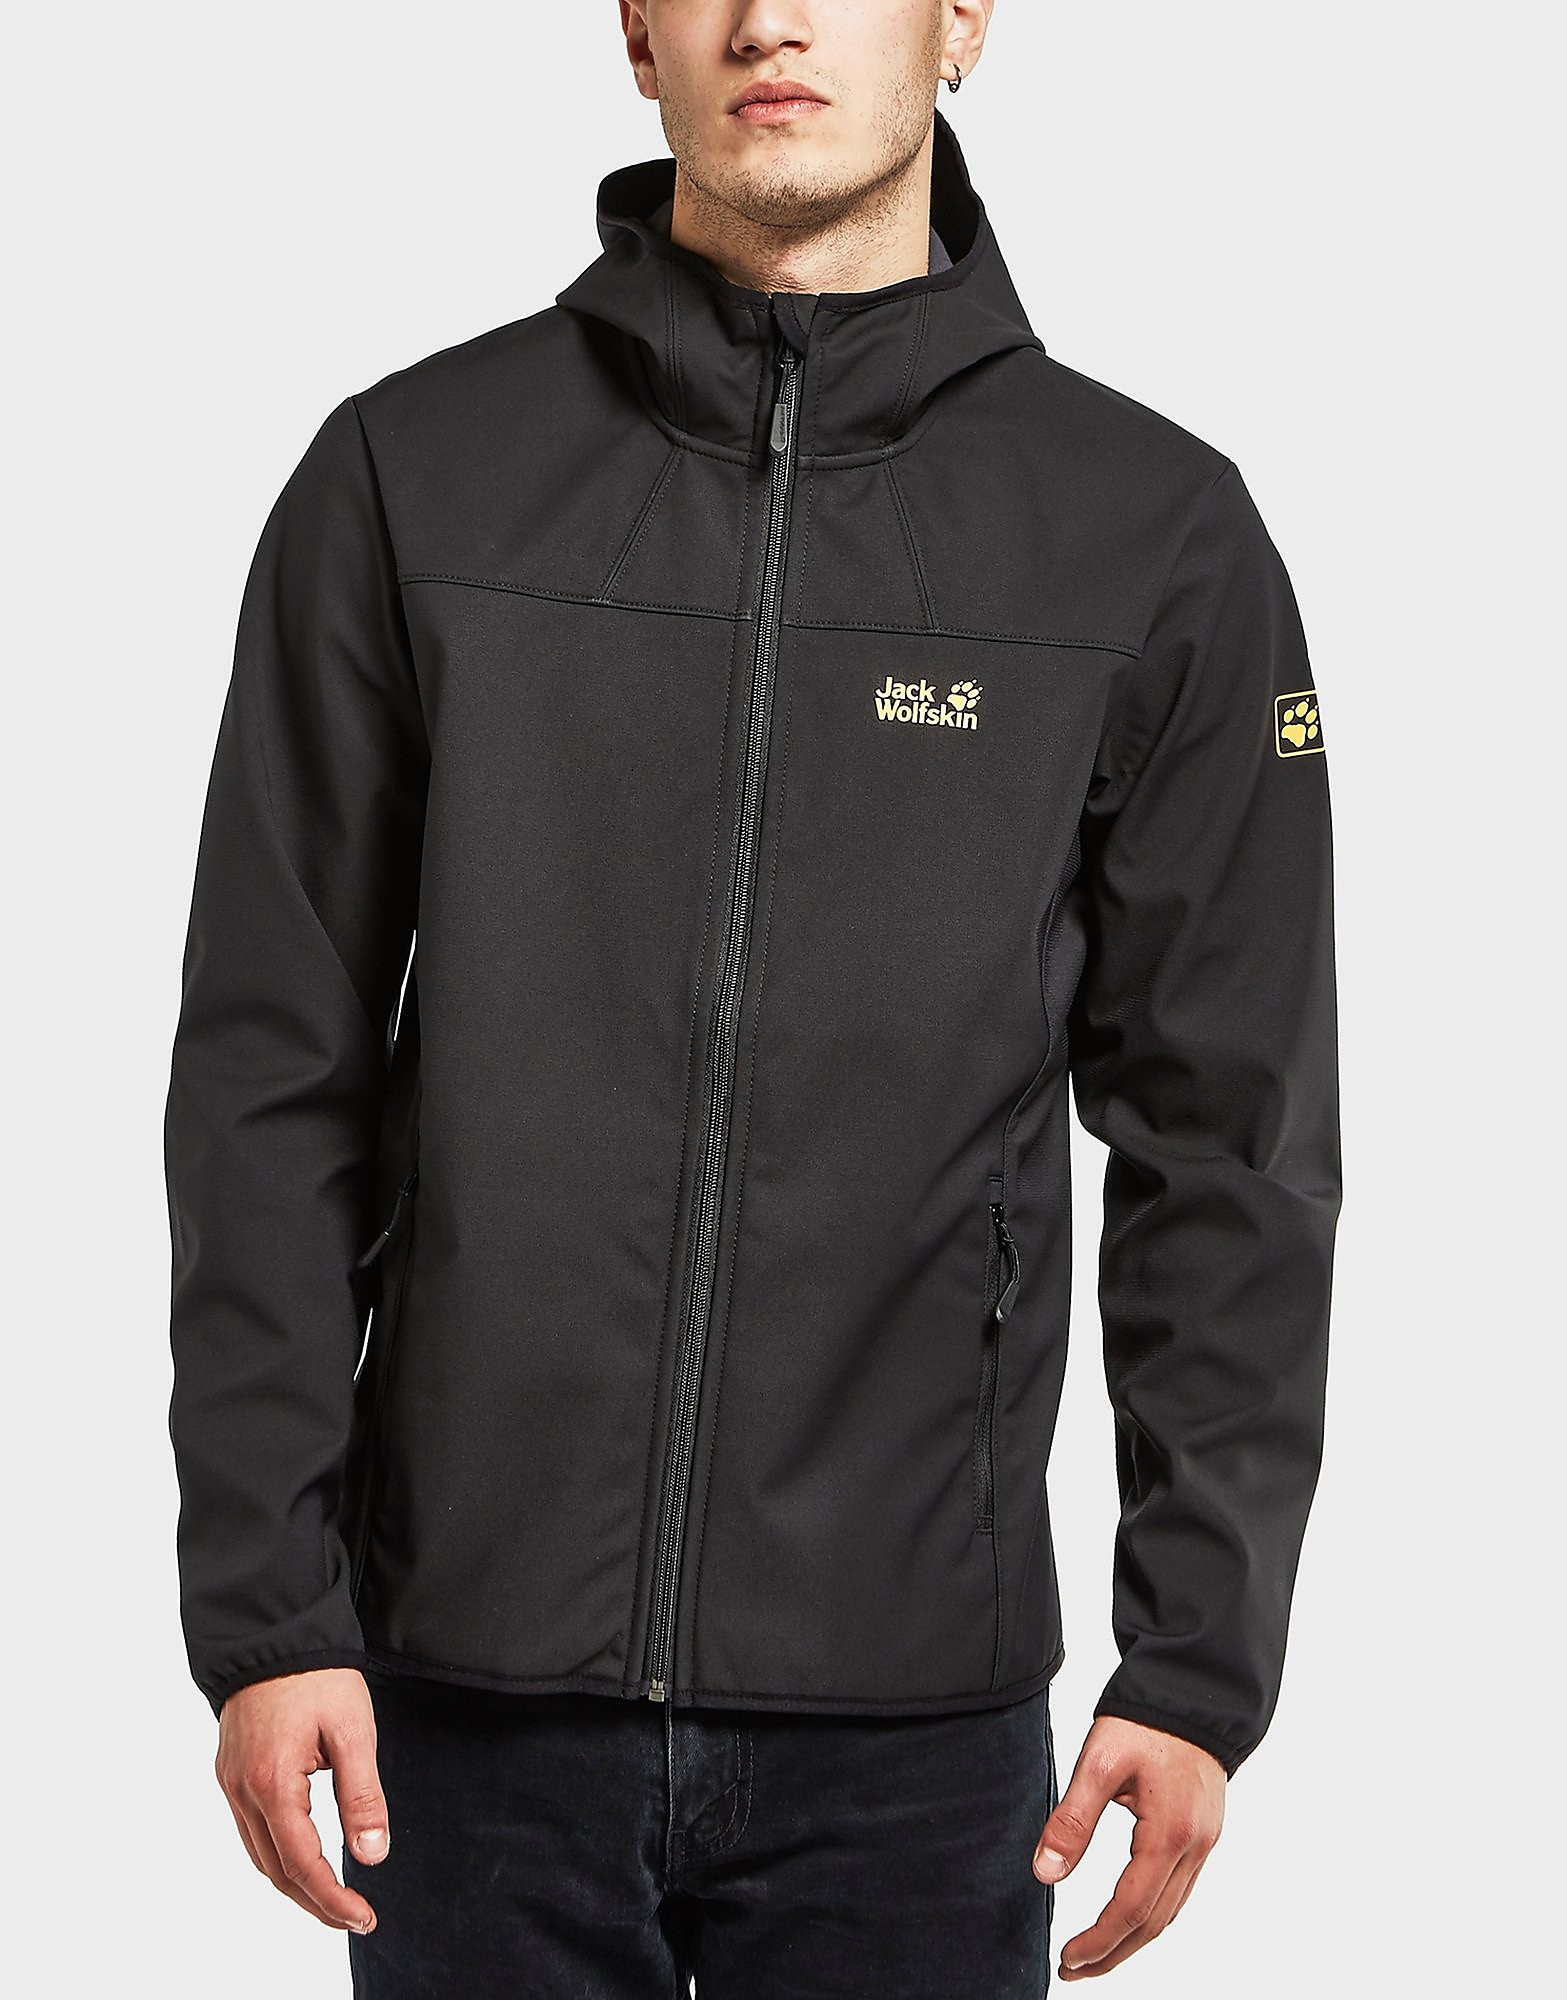 Jack Wolfskin Northern Point Shell Lightweight Jacket